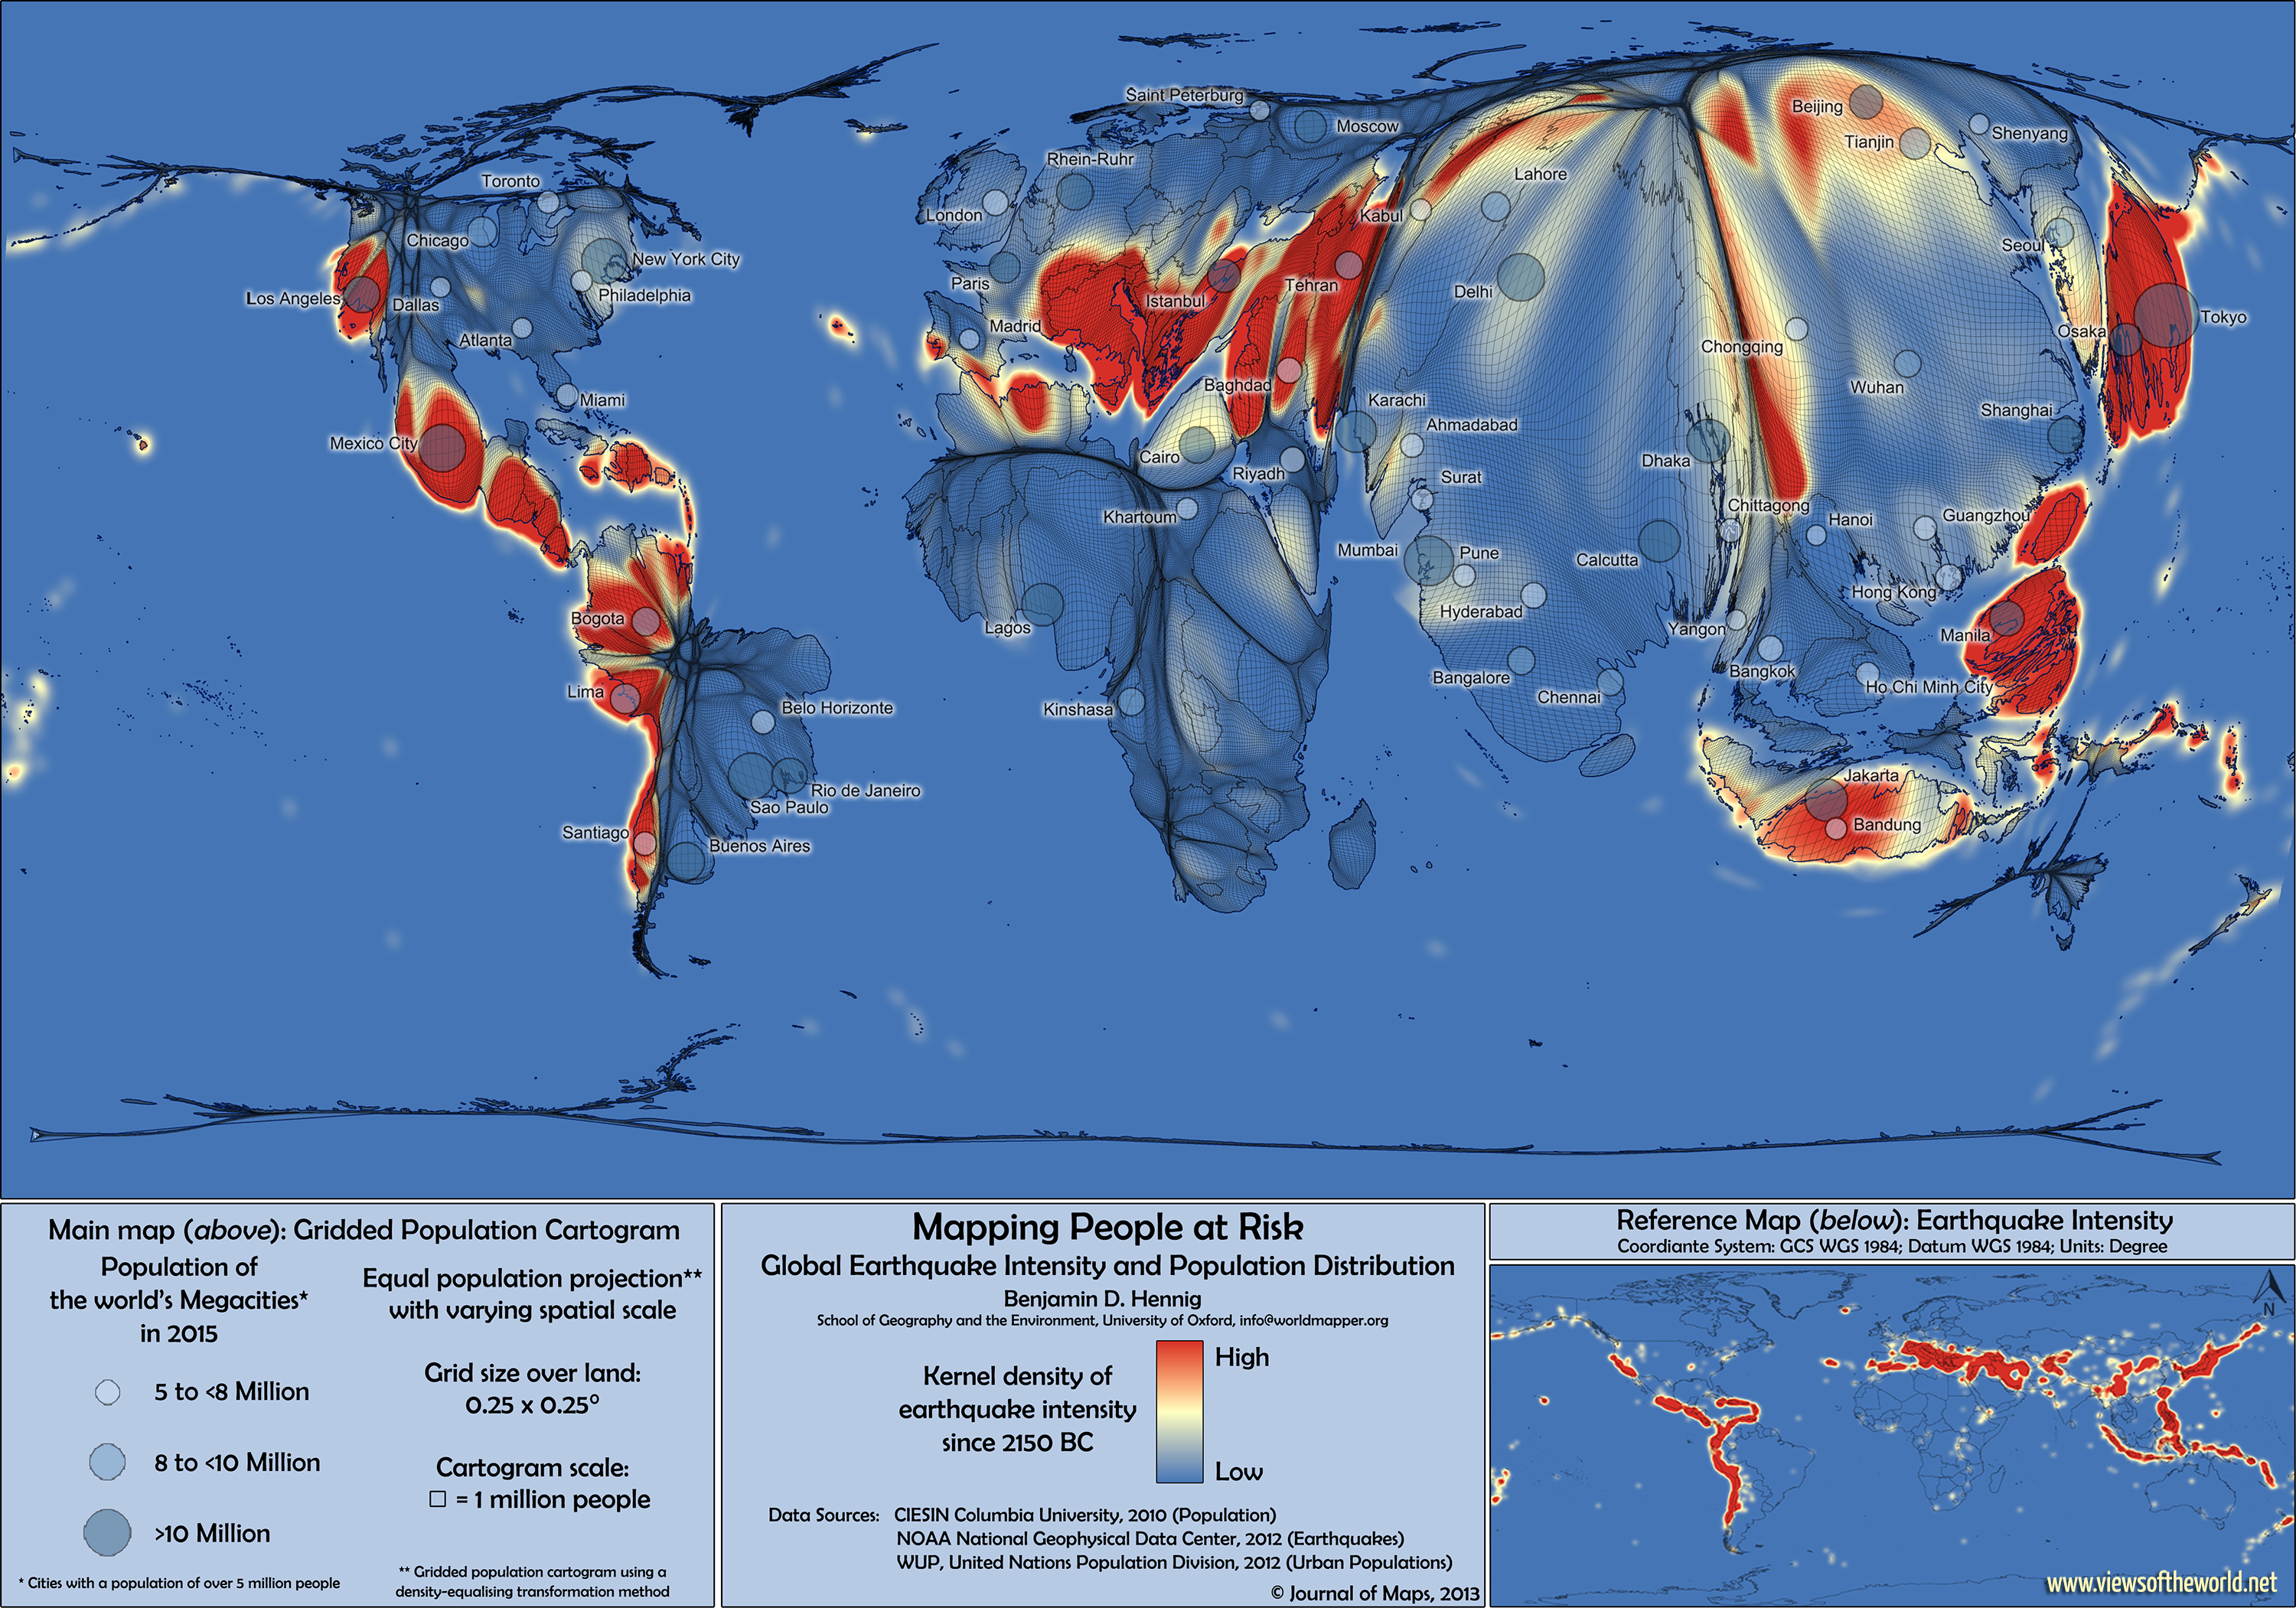 Map Of Earthquake Risk Zones On An Equal Population Projection